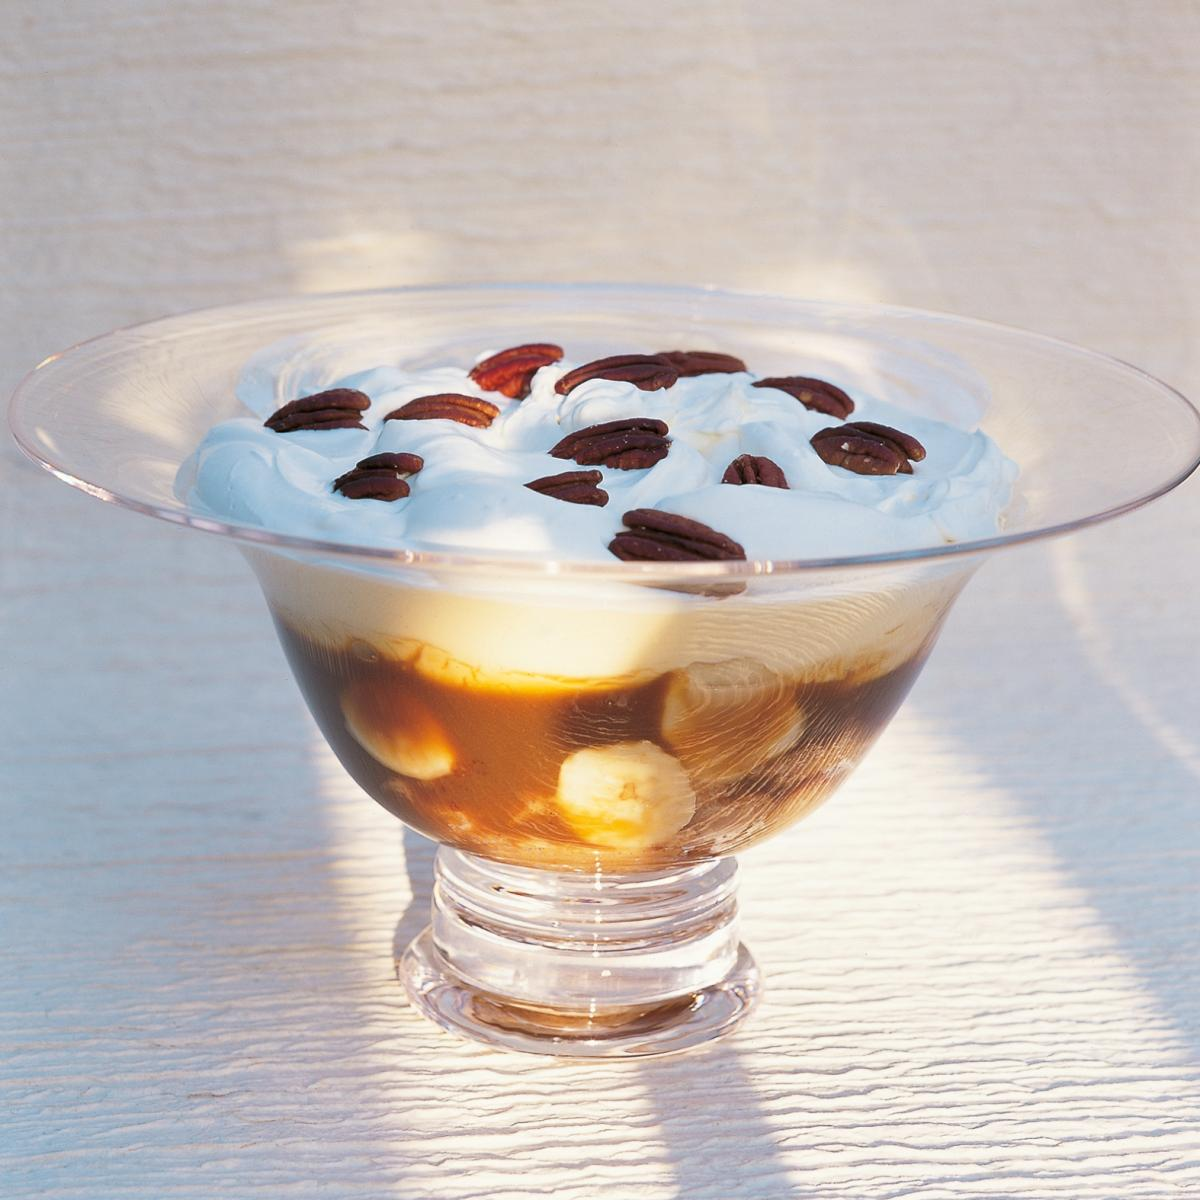 Htc butterscotch and banana trifle with madeira